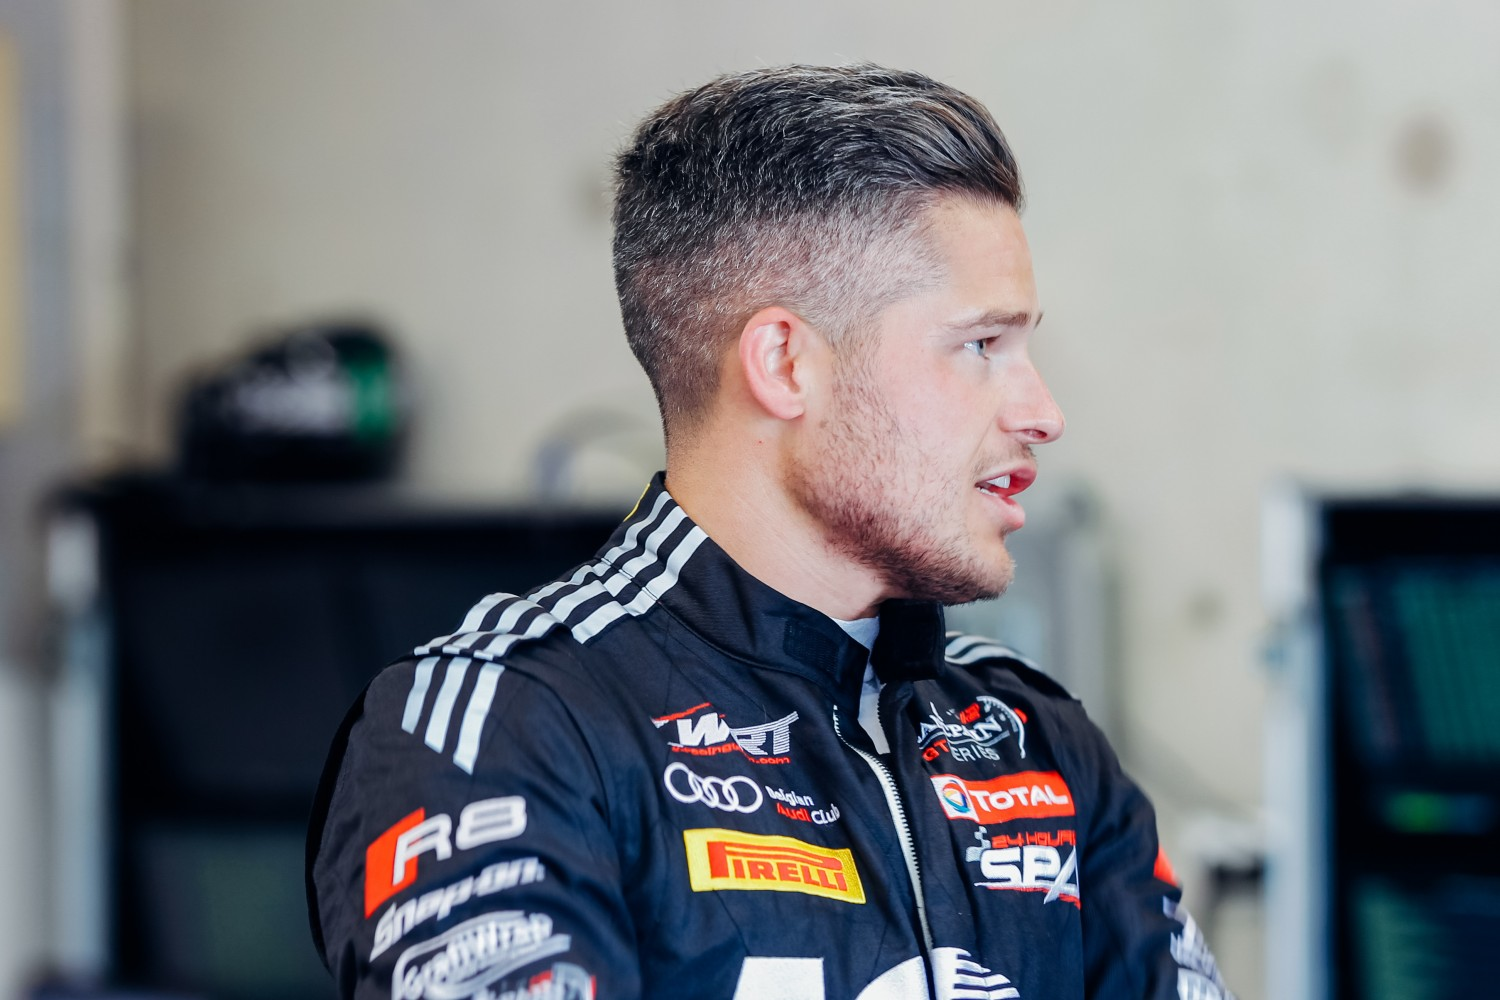 In Profile: Christopher Mies and the rise of GT3 racing